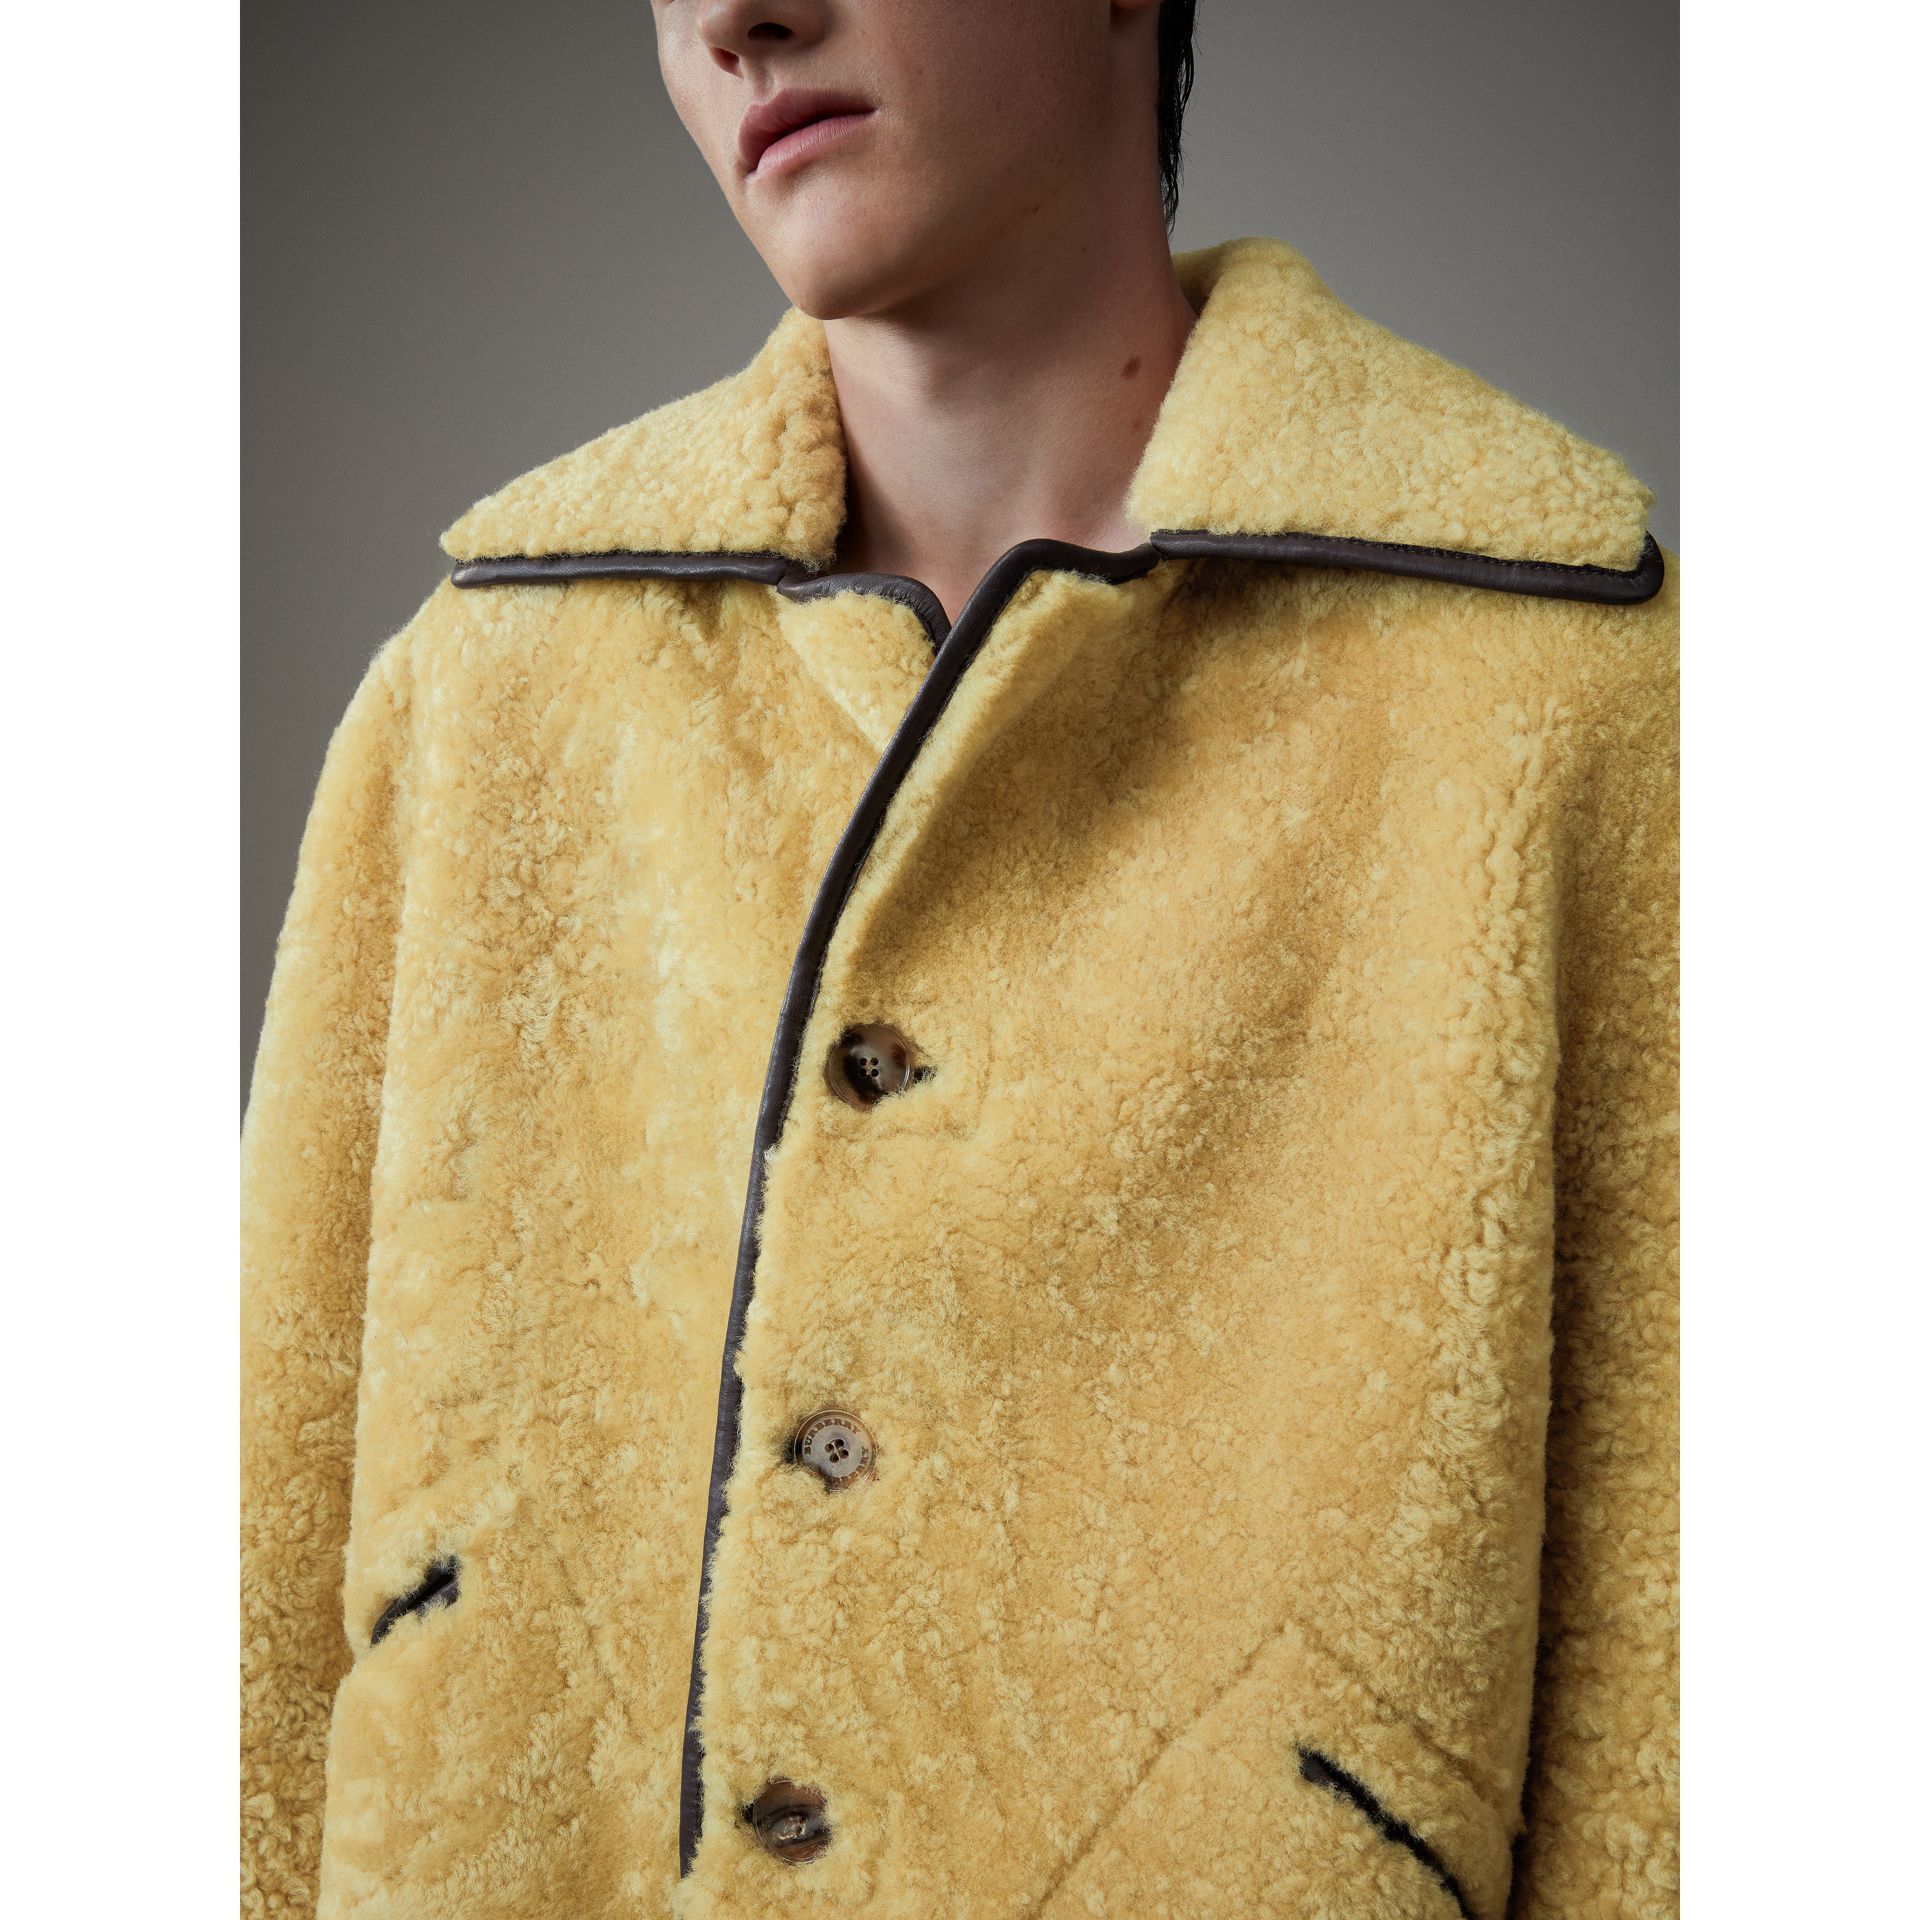 Relaxed Fit Shearling and Lambskin Jacket in Chocolate/light Citrus - Men | Burberry United Kingdom - gallery image 1